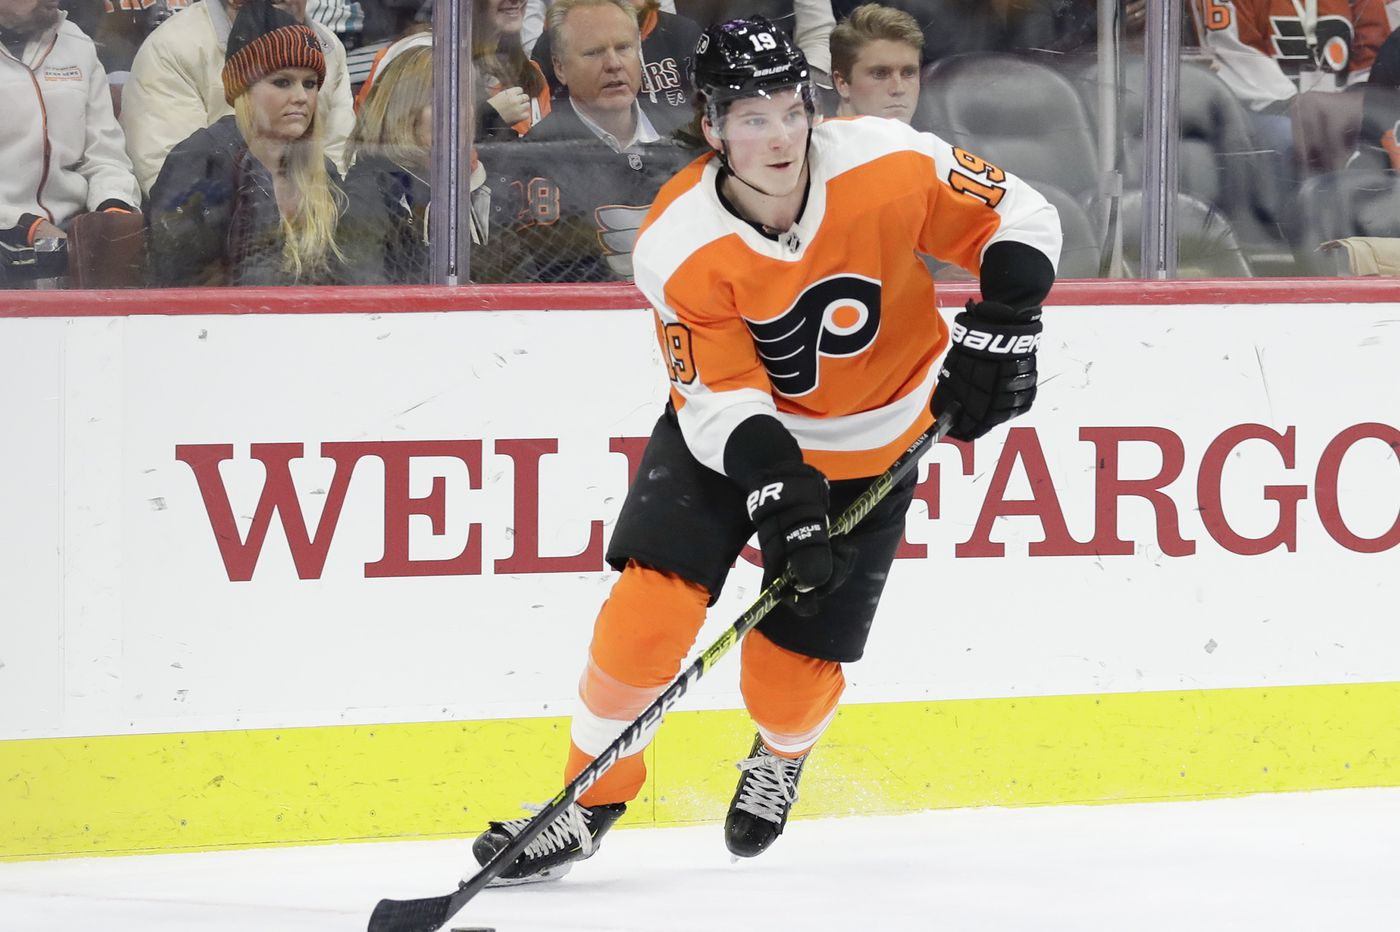 Flyers' Nolan Patrick says going 22 games without a goal 'will make me stronger'